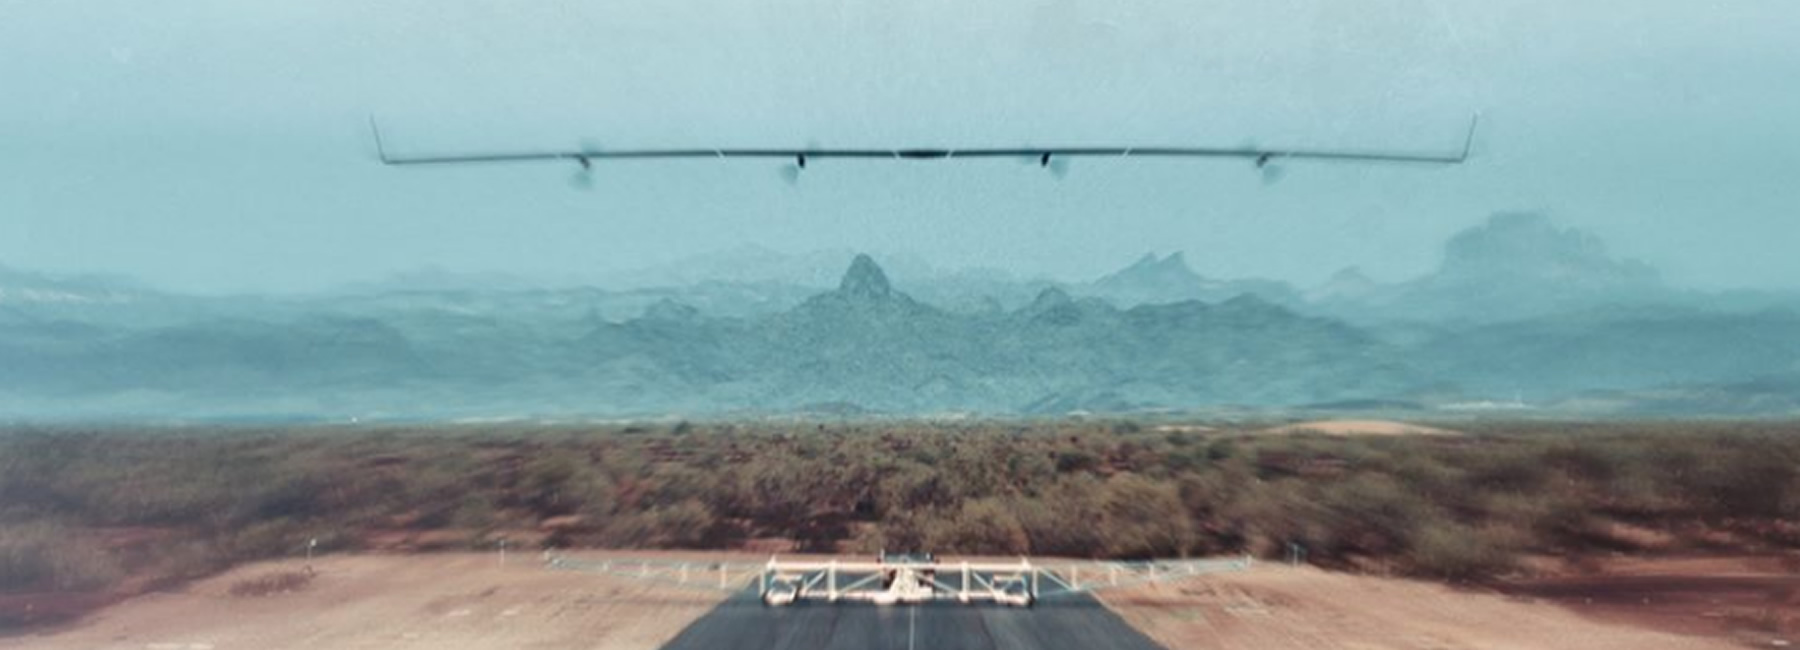 Aquila,Facebook's solar-powered plane that will beam internet to remote parts of the world